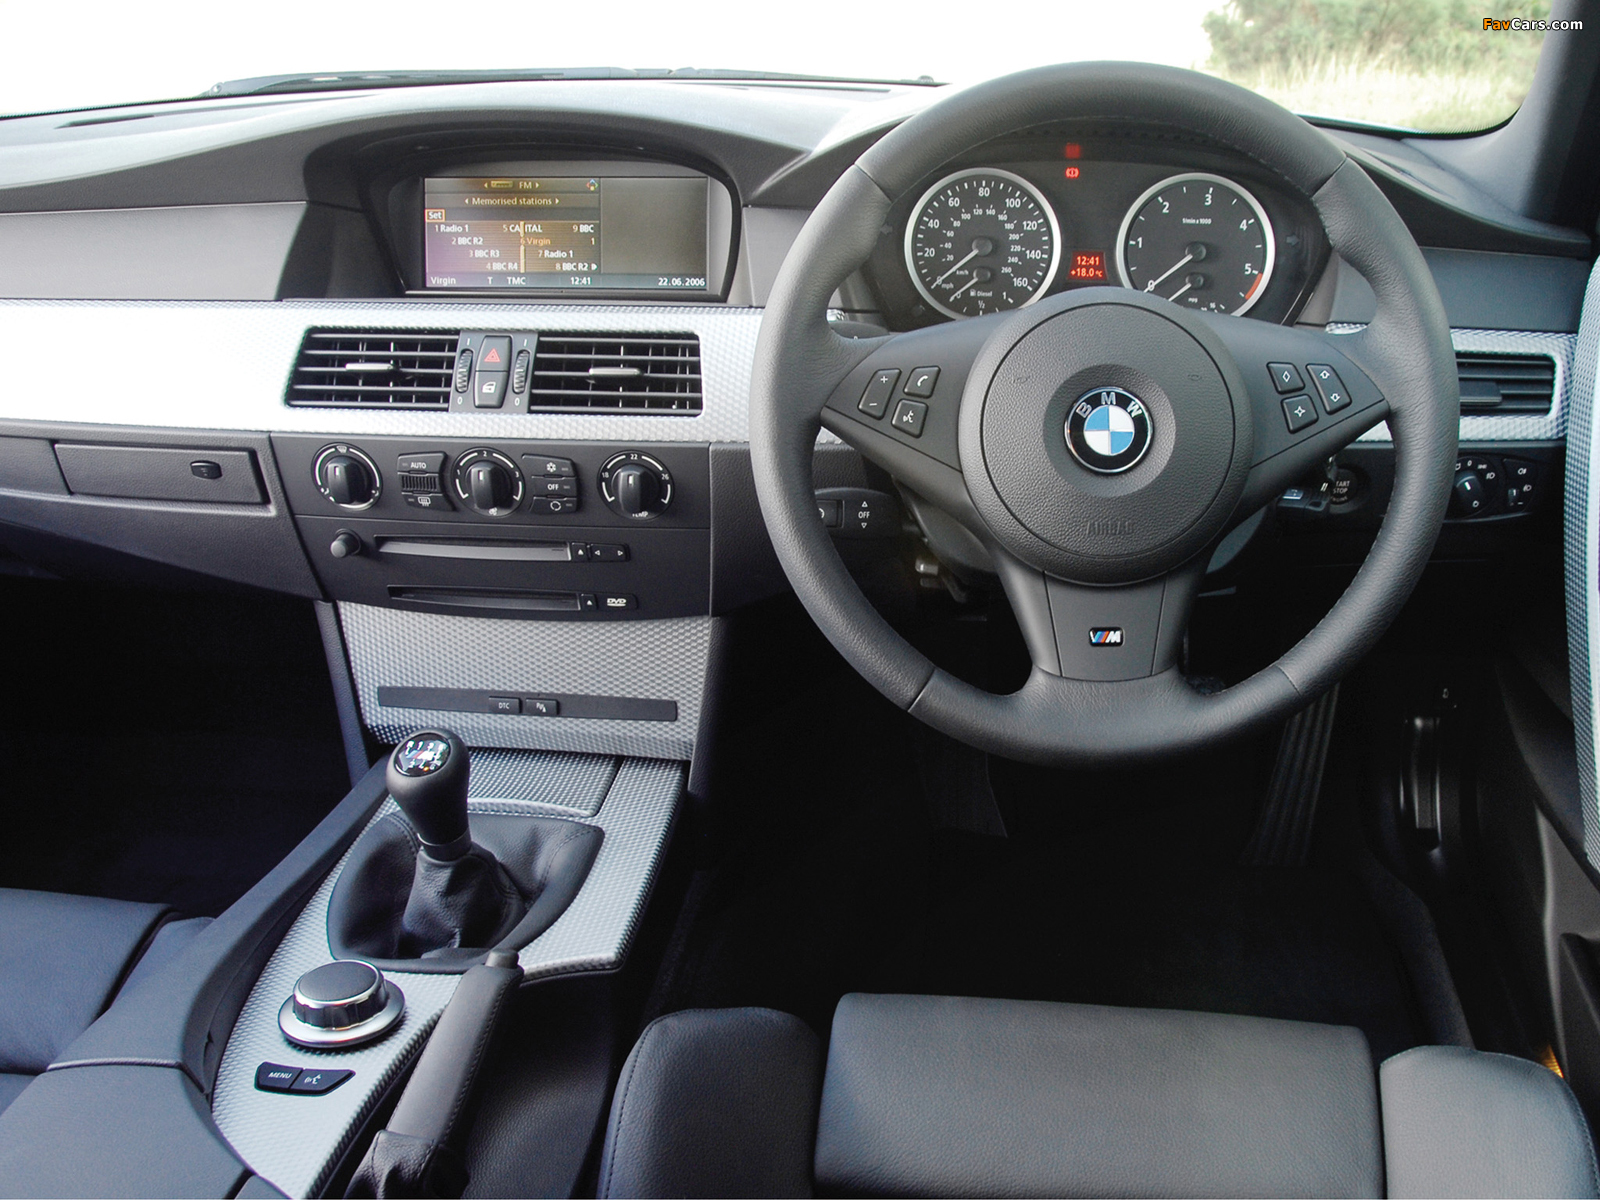 bmw 530d touring m sports package uk spec e61 2005 pictures 1600x1200. Black Bedroom Furniture Sets. Home Design Ideas